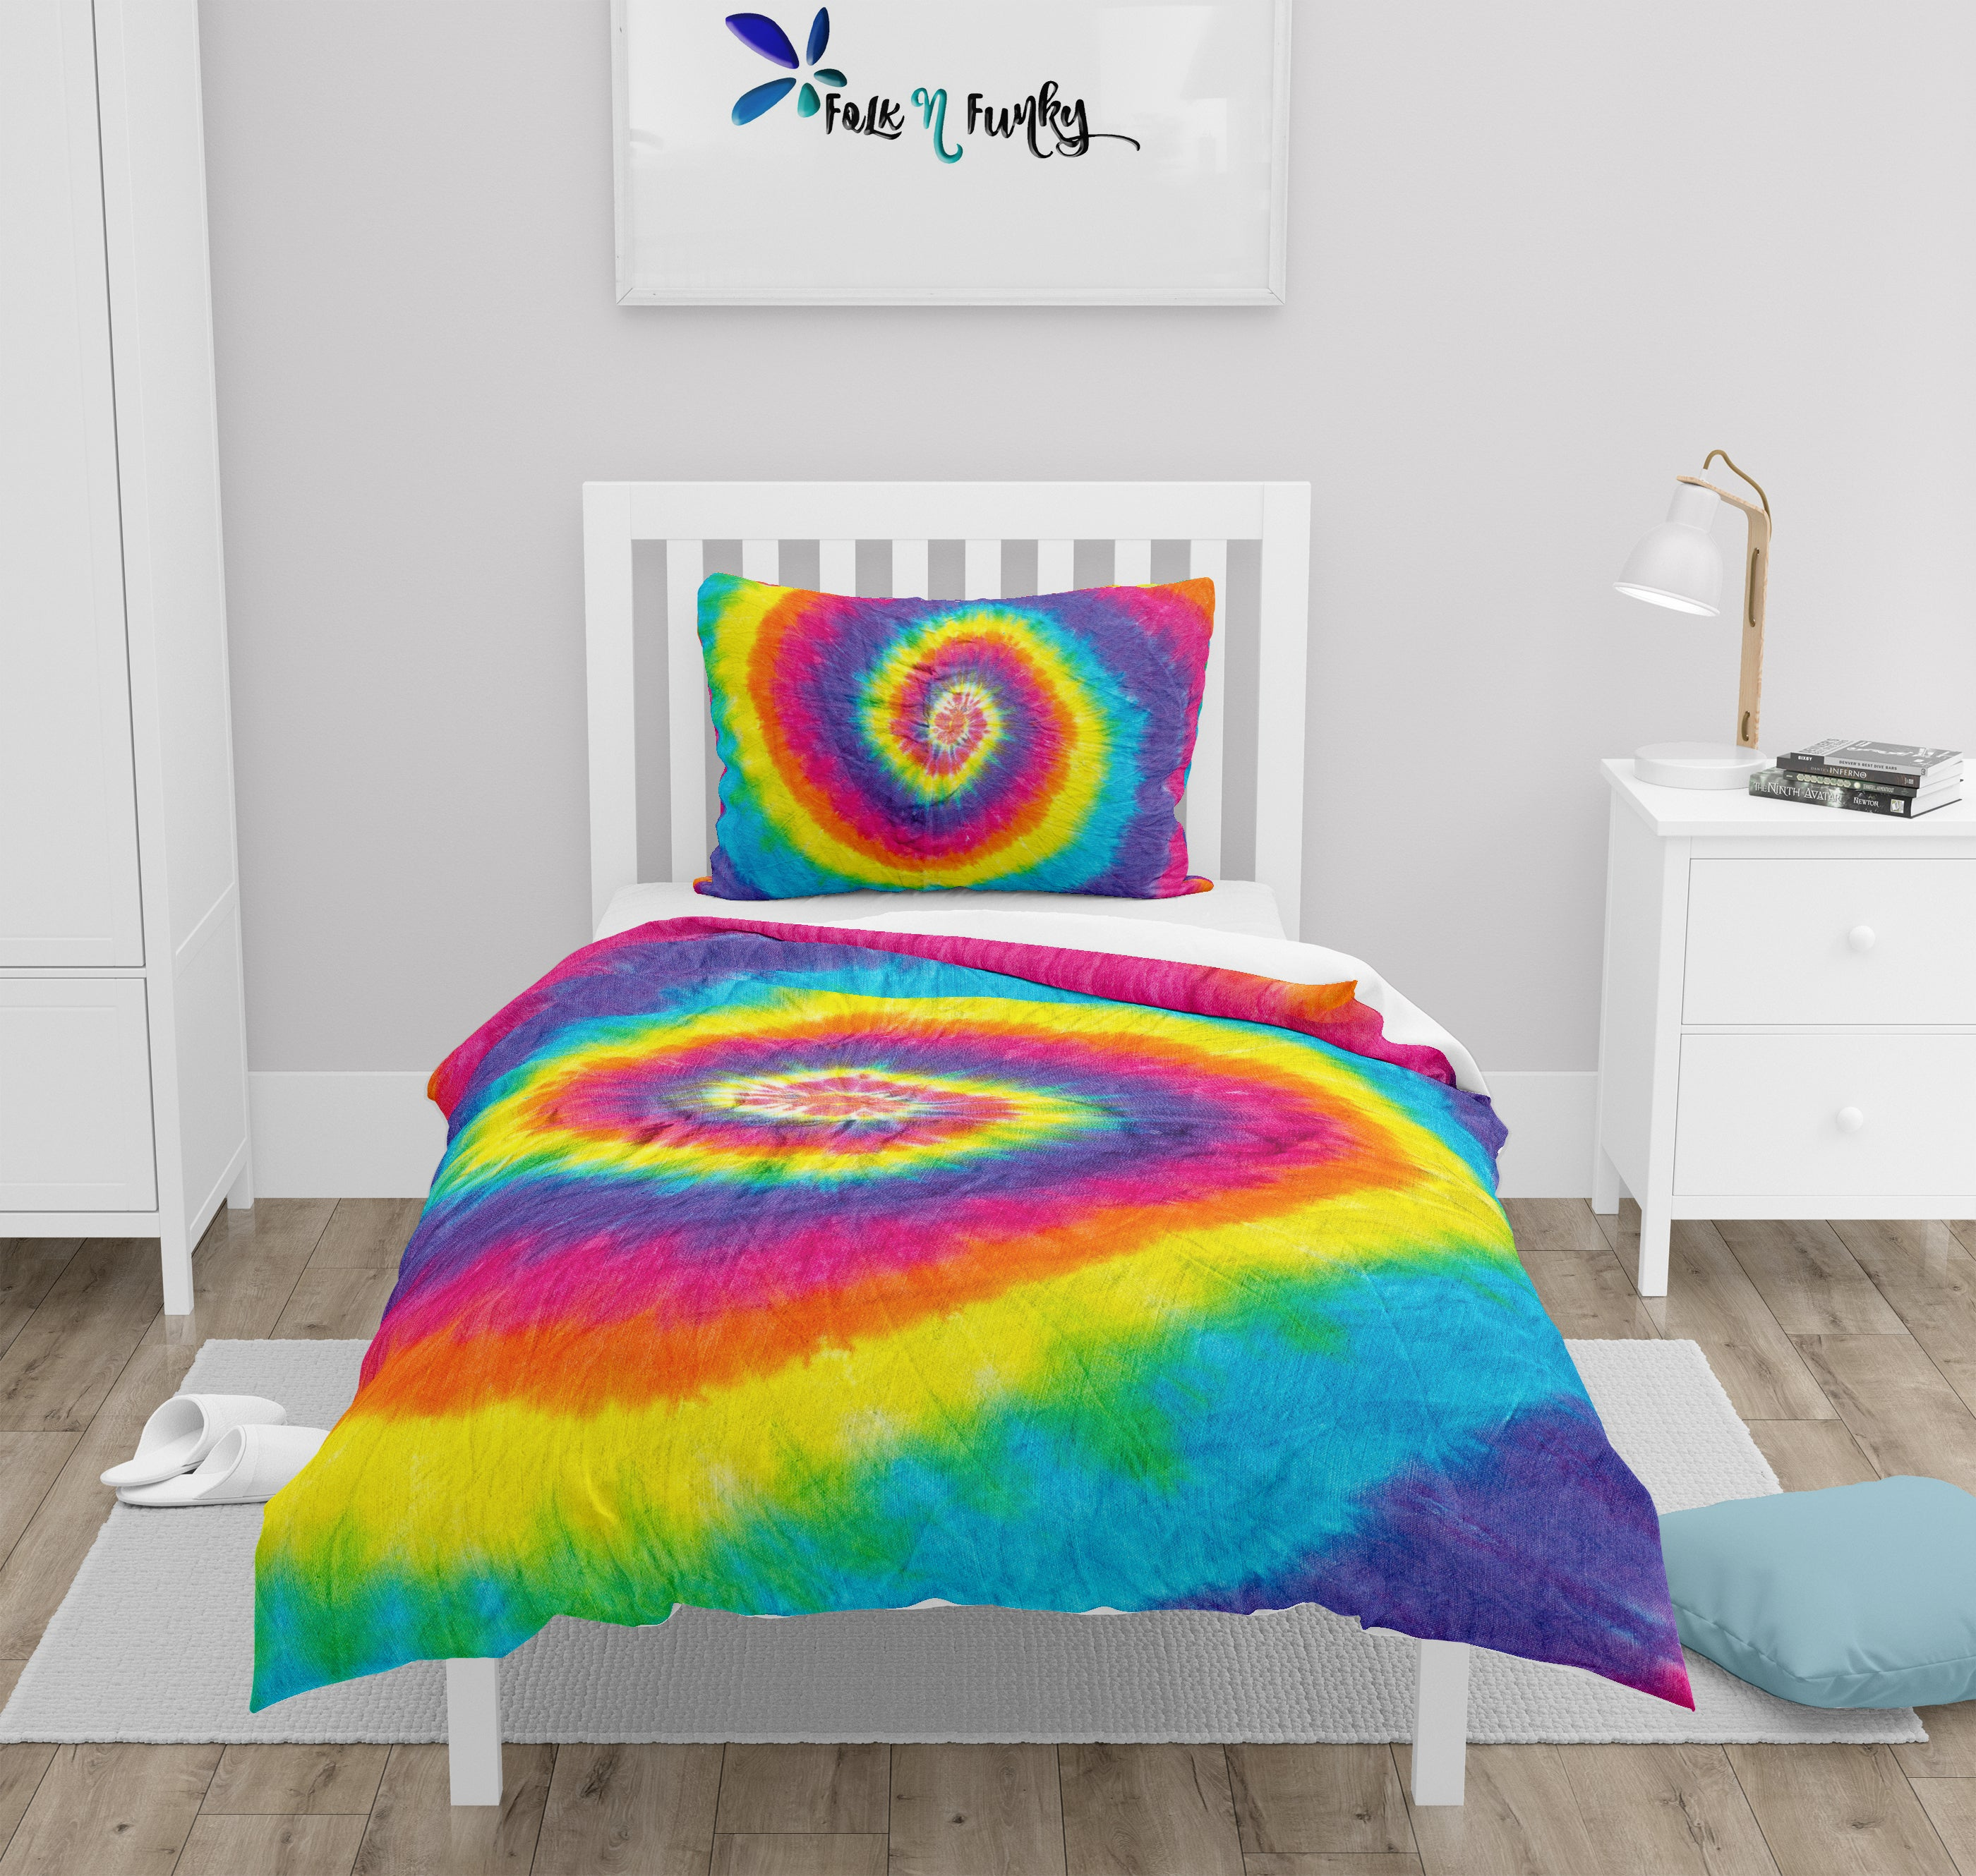 Tie Dye Bedding Set Comforter or Duvet Cover, Twin, Full, Queen, King,